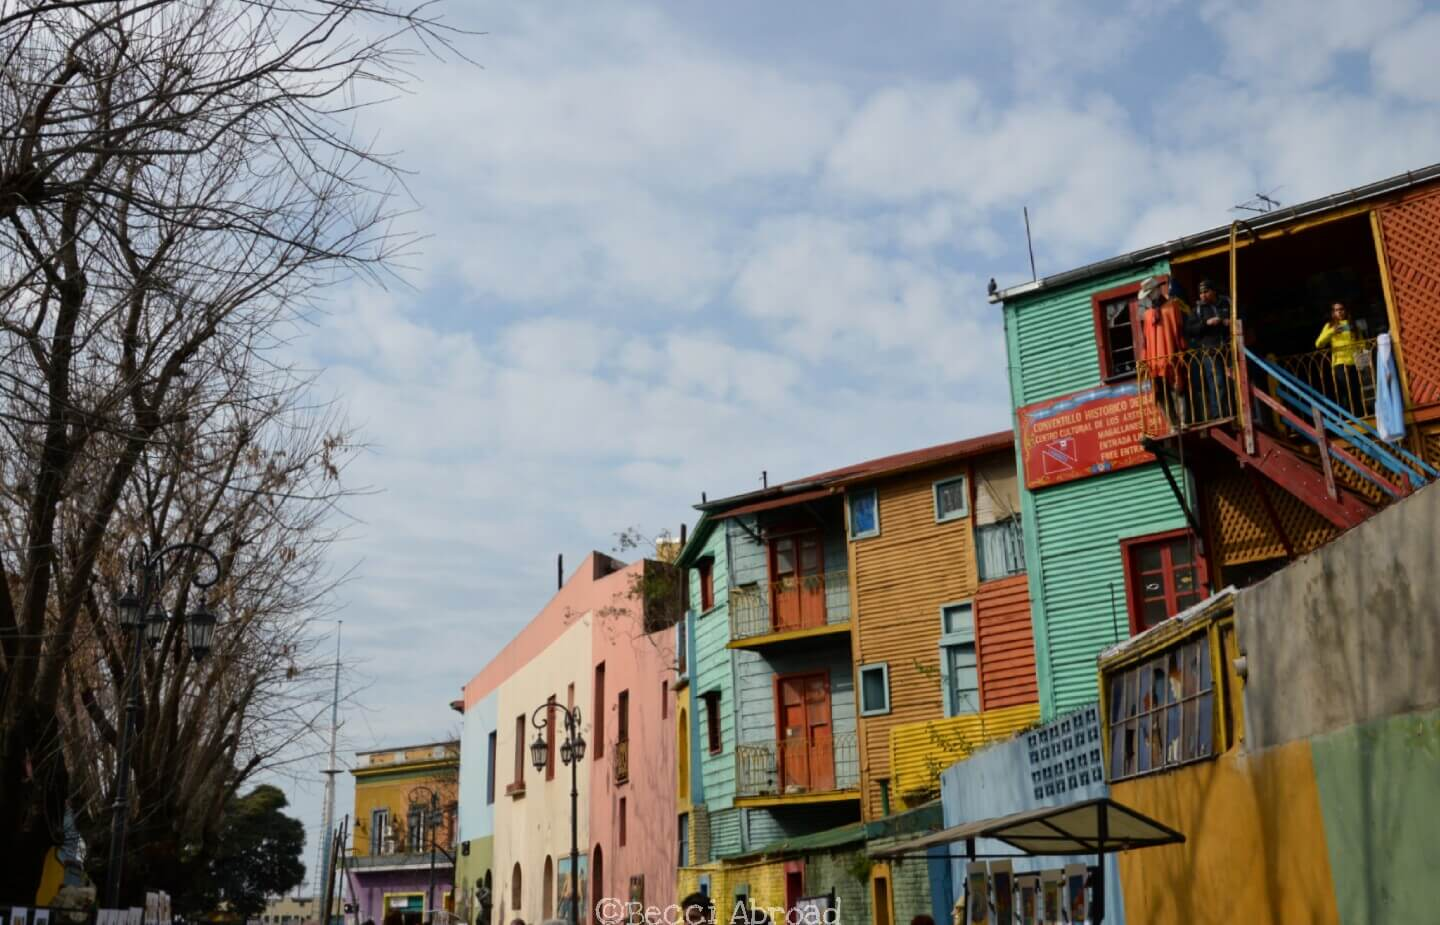 Is Buenos Aires' colorful La Boca neighborhood overrated or worth a visit? Find out more - Becci Abroad